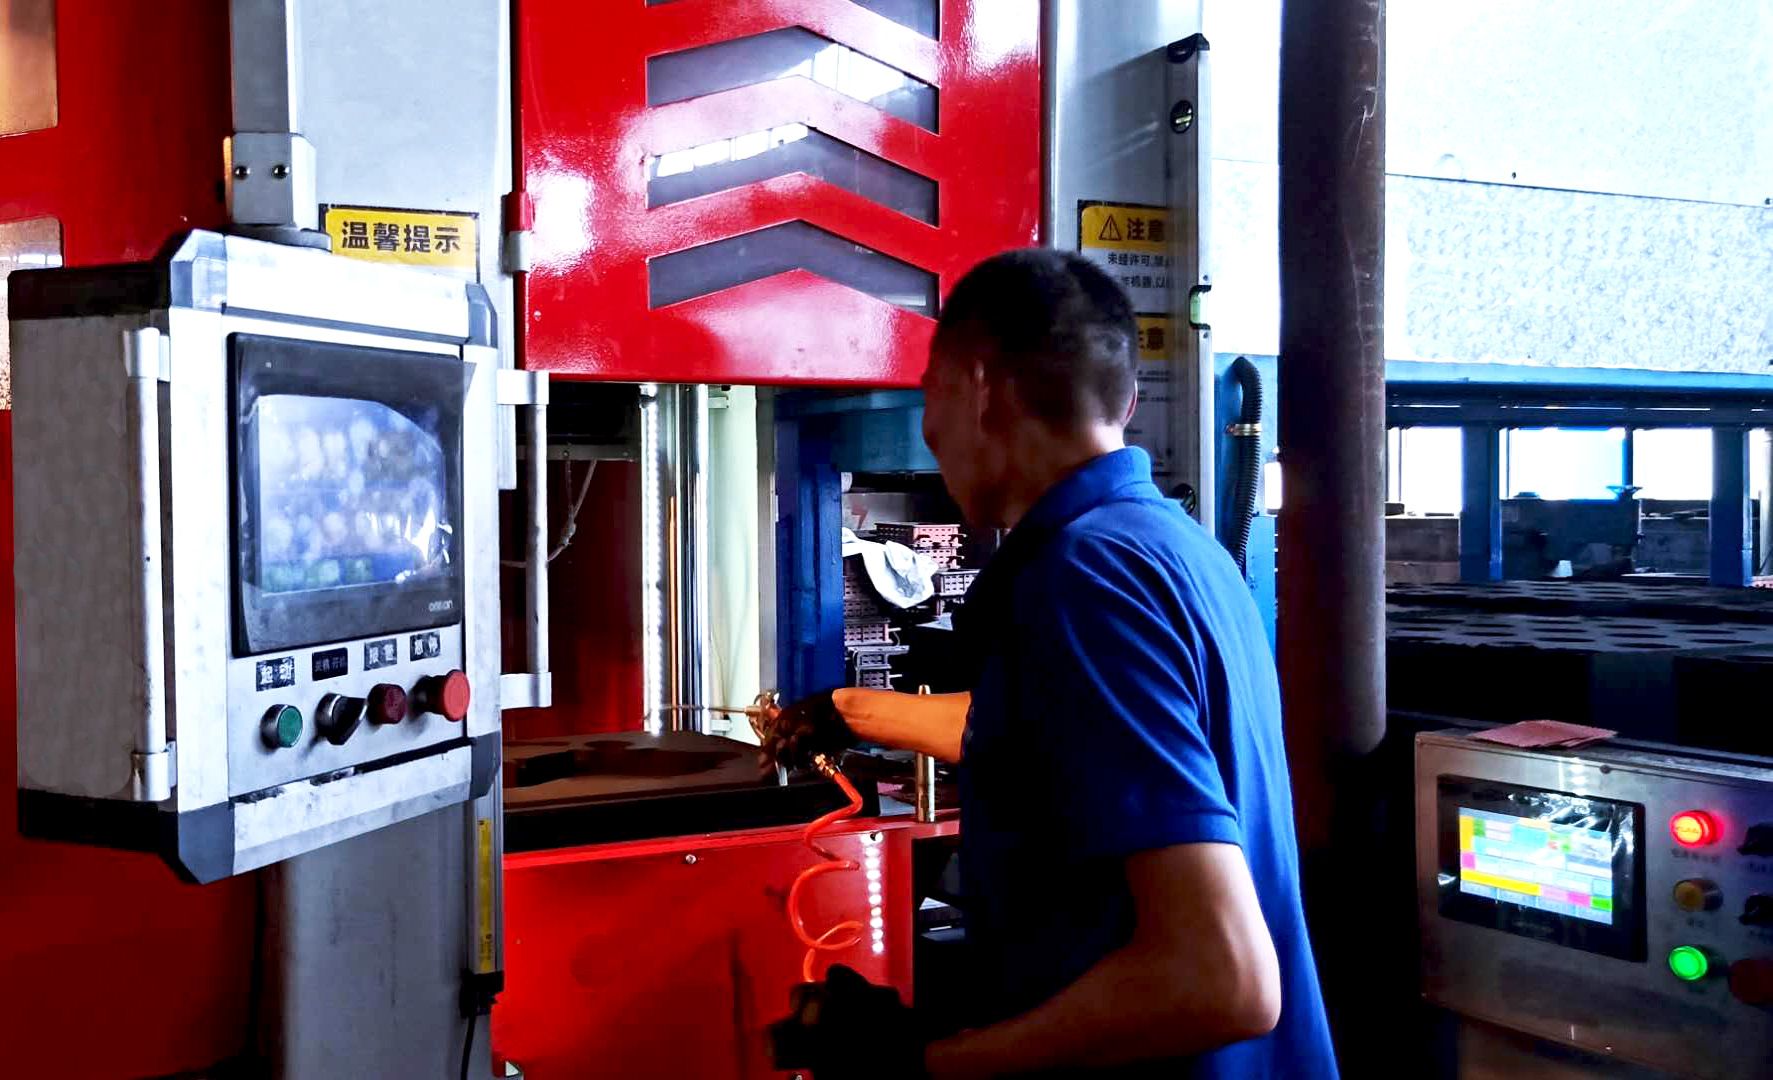 Foundry workers are working on the molding machine